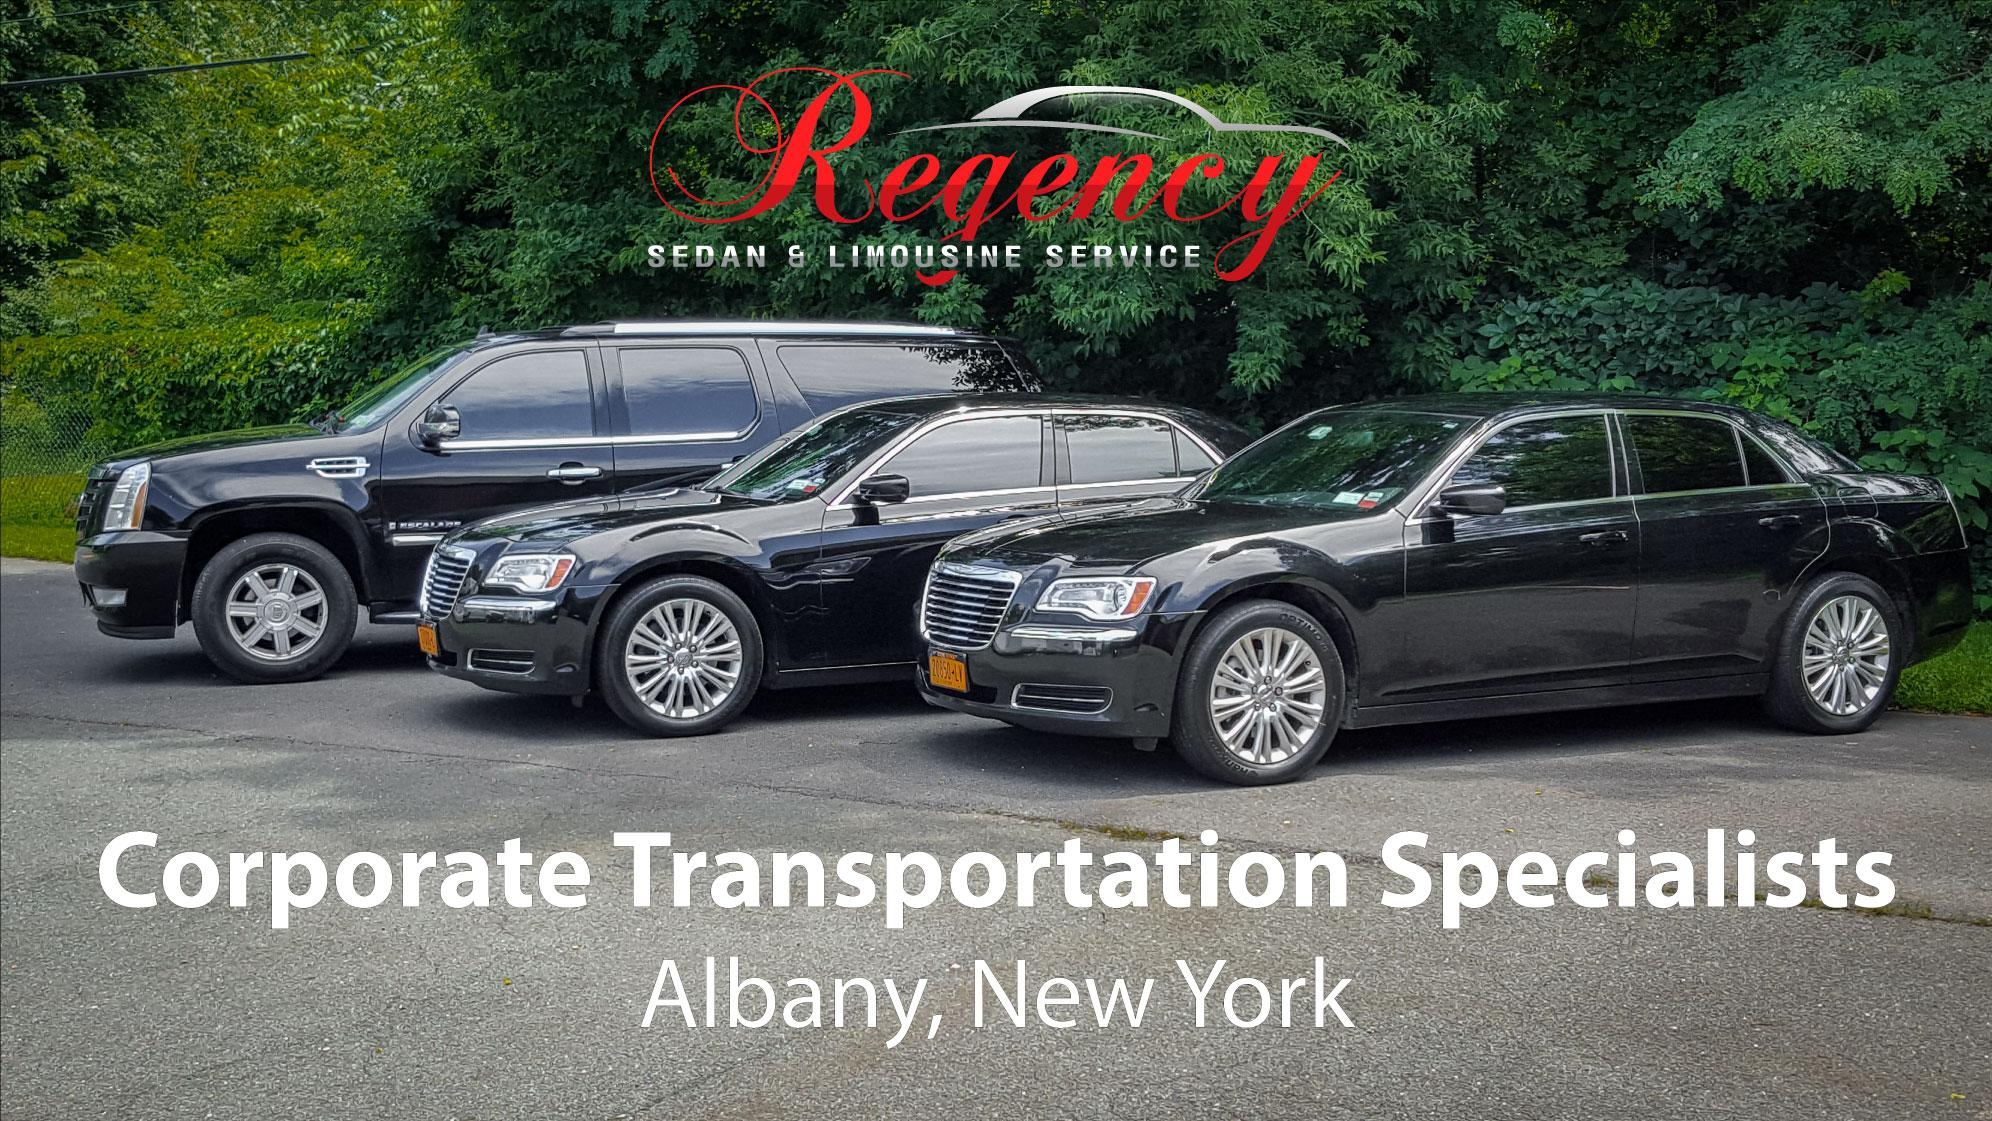 regency sedan fleet three of the vehicles used by the car service